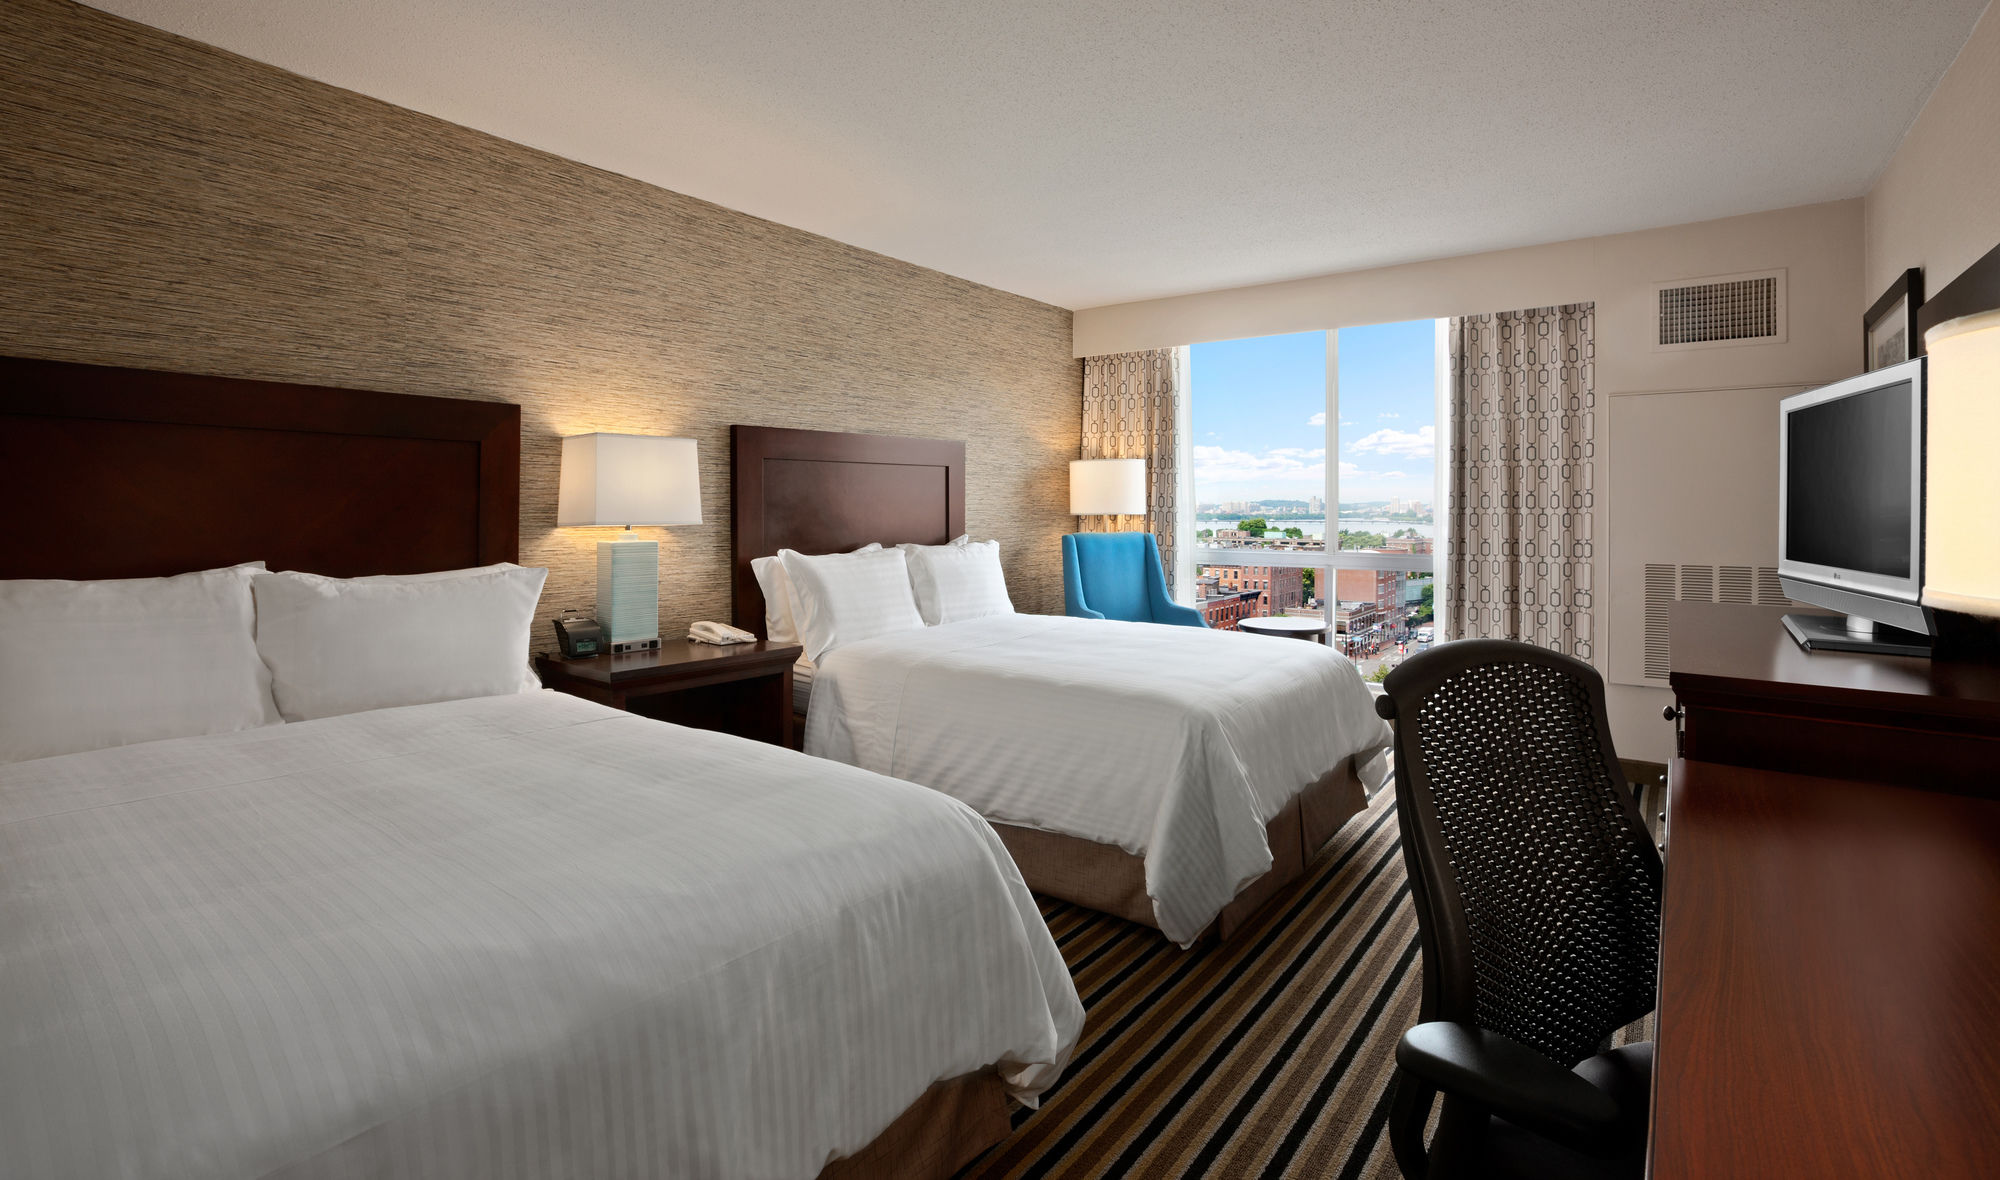 Boston Hotel Coupons for Boston, Massachusetts